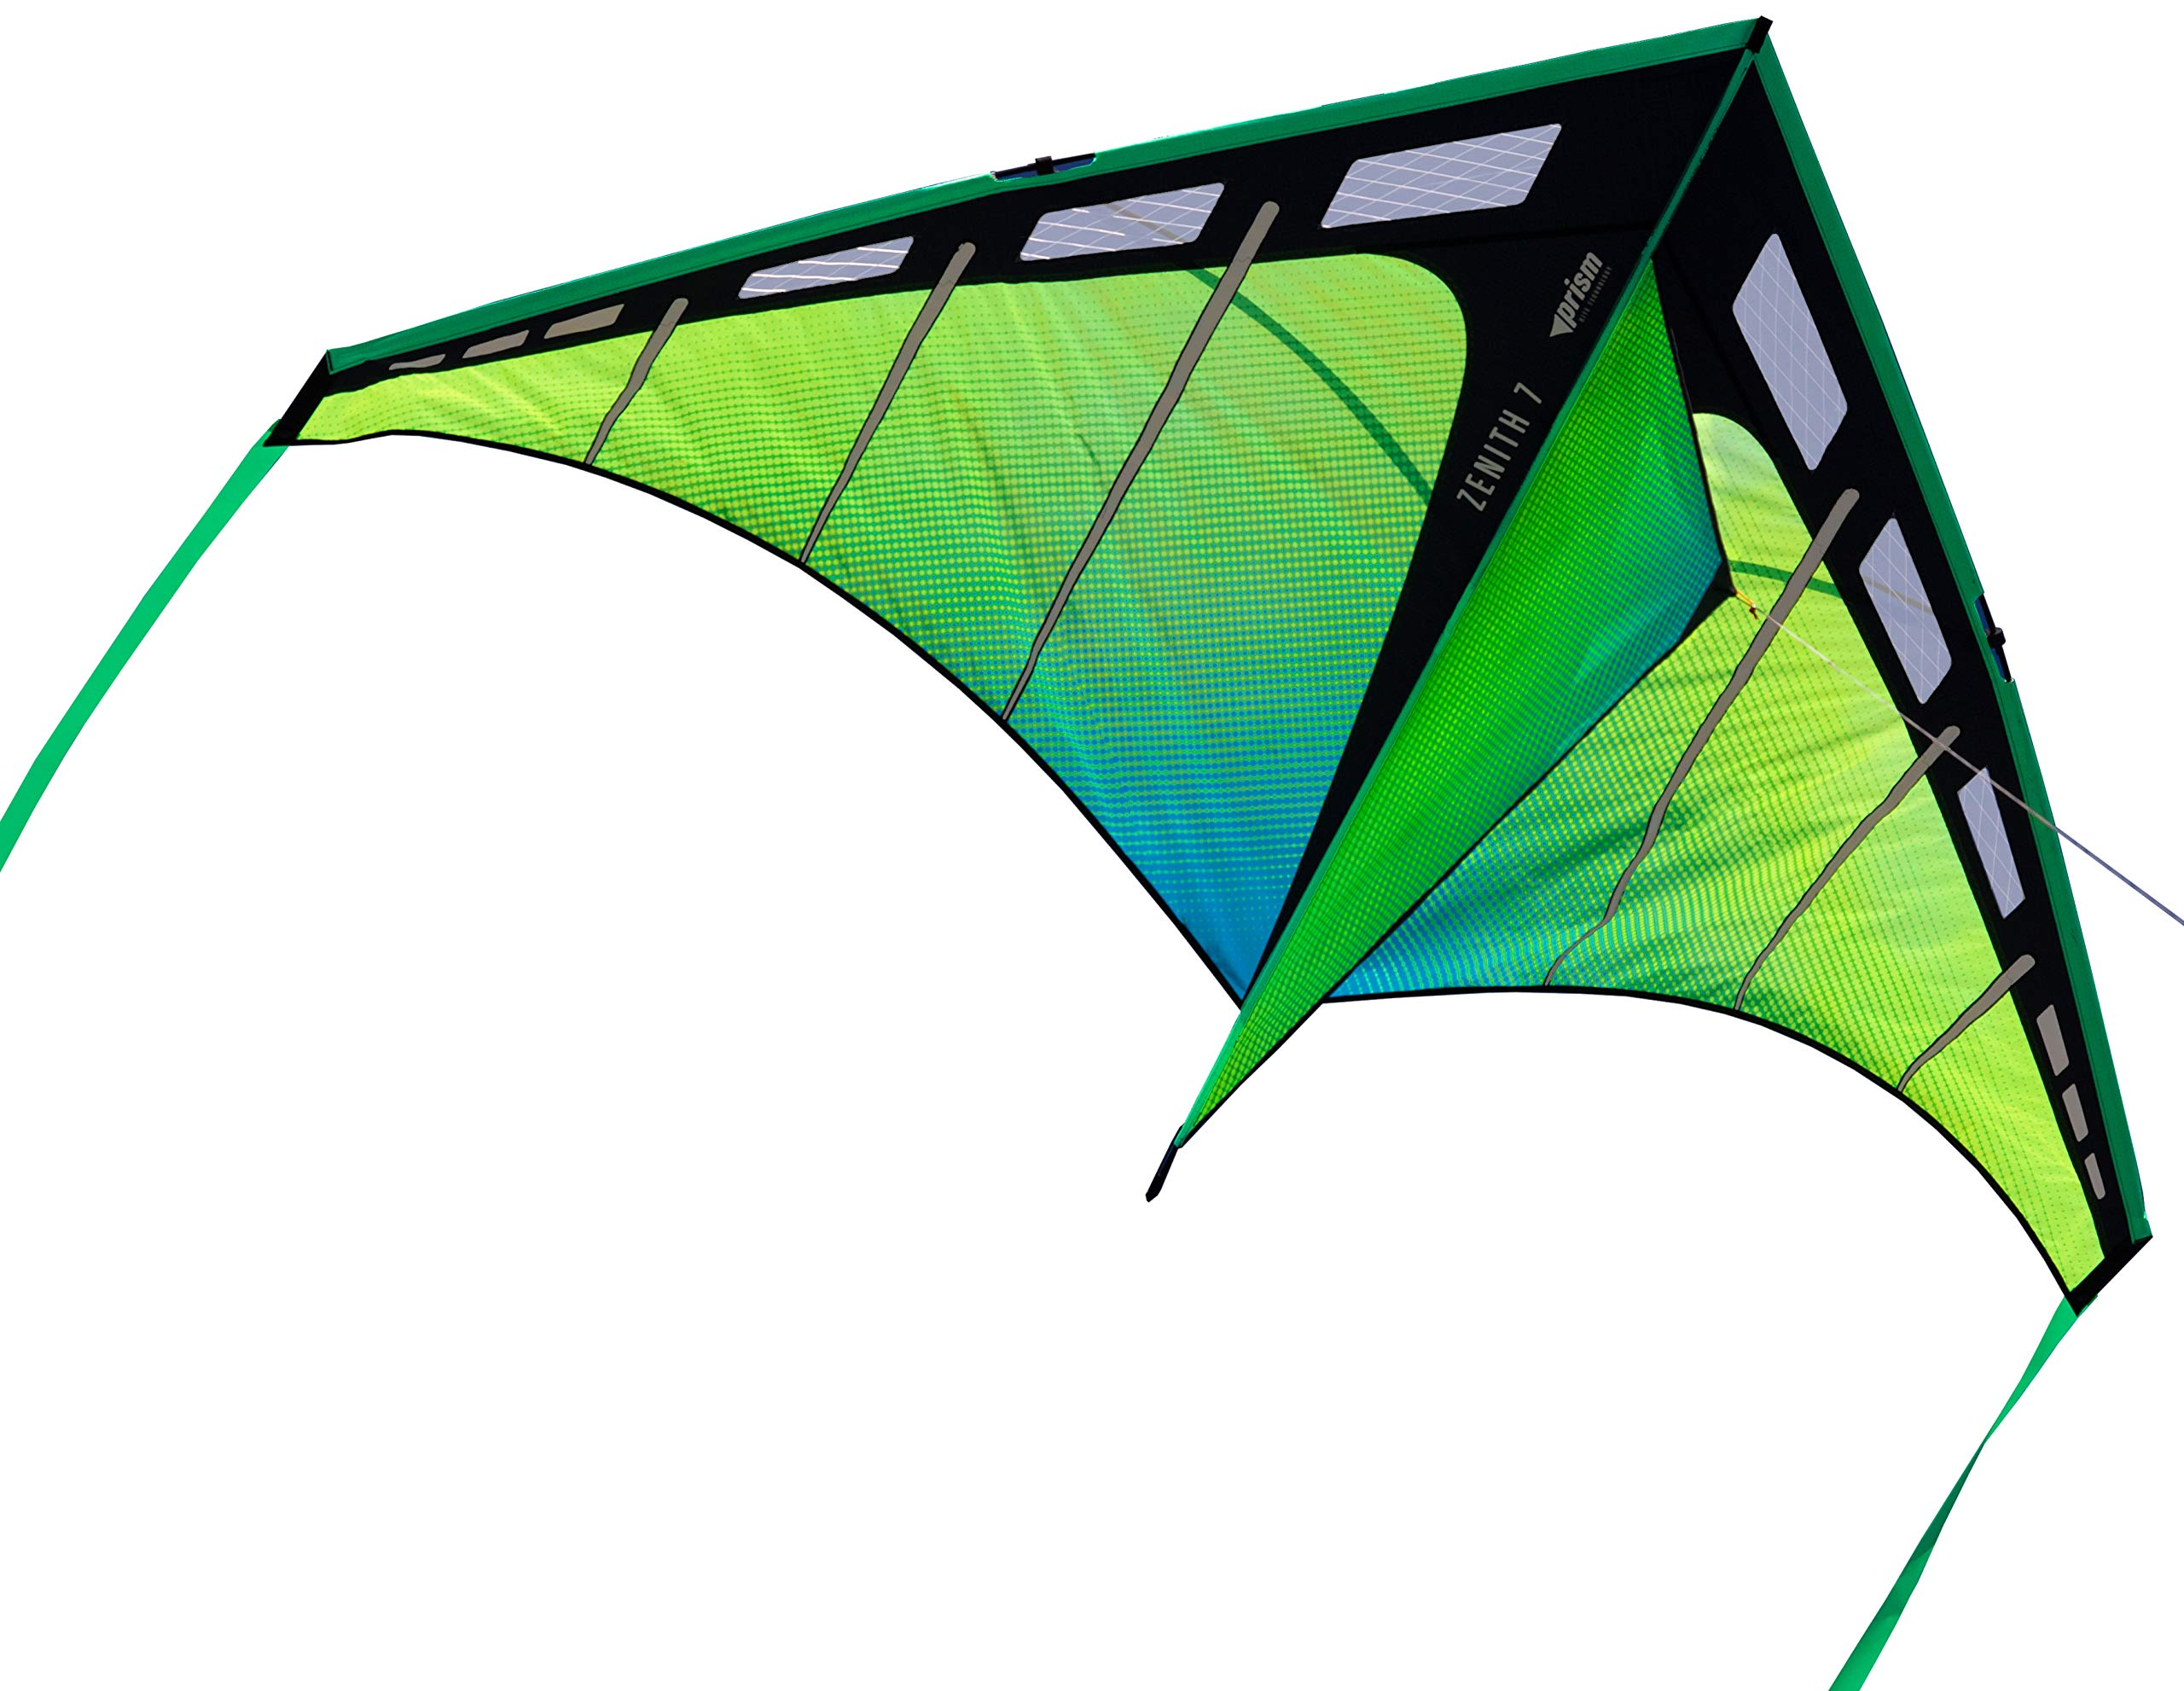 Prism Kite Technology Zenith 7 Aurora Single Line Kite, Ready to Fly with line, Winder and Travel Sleeve